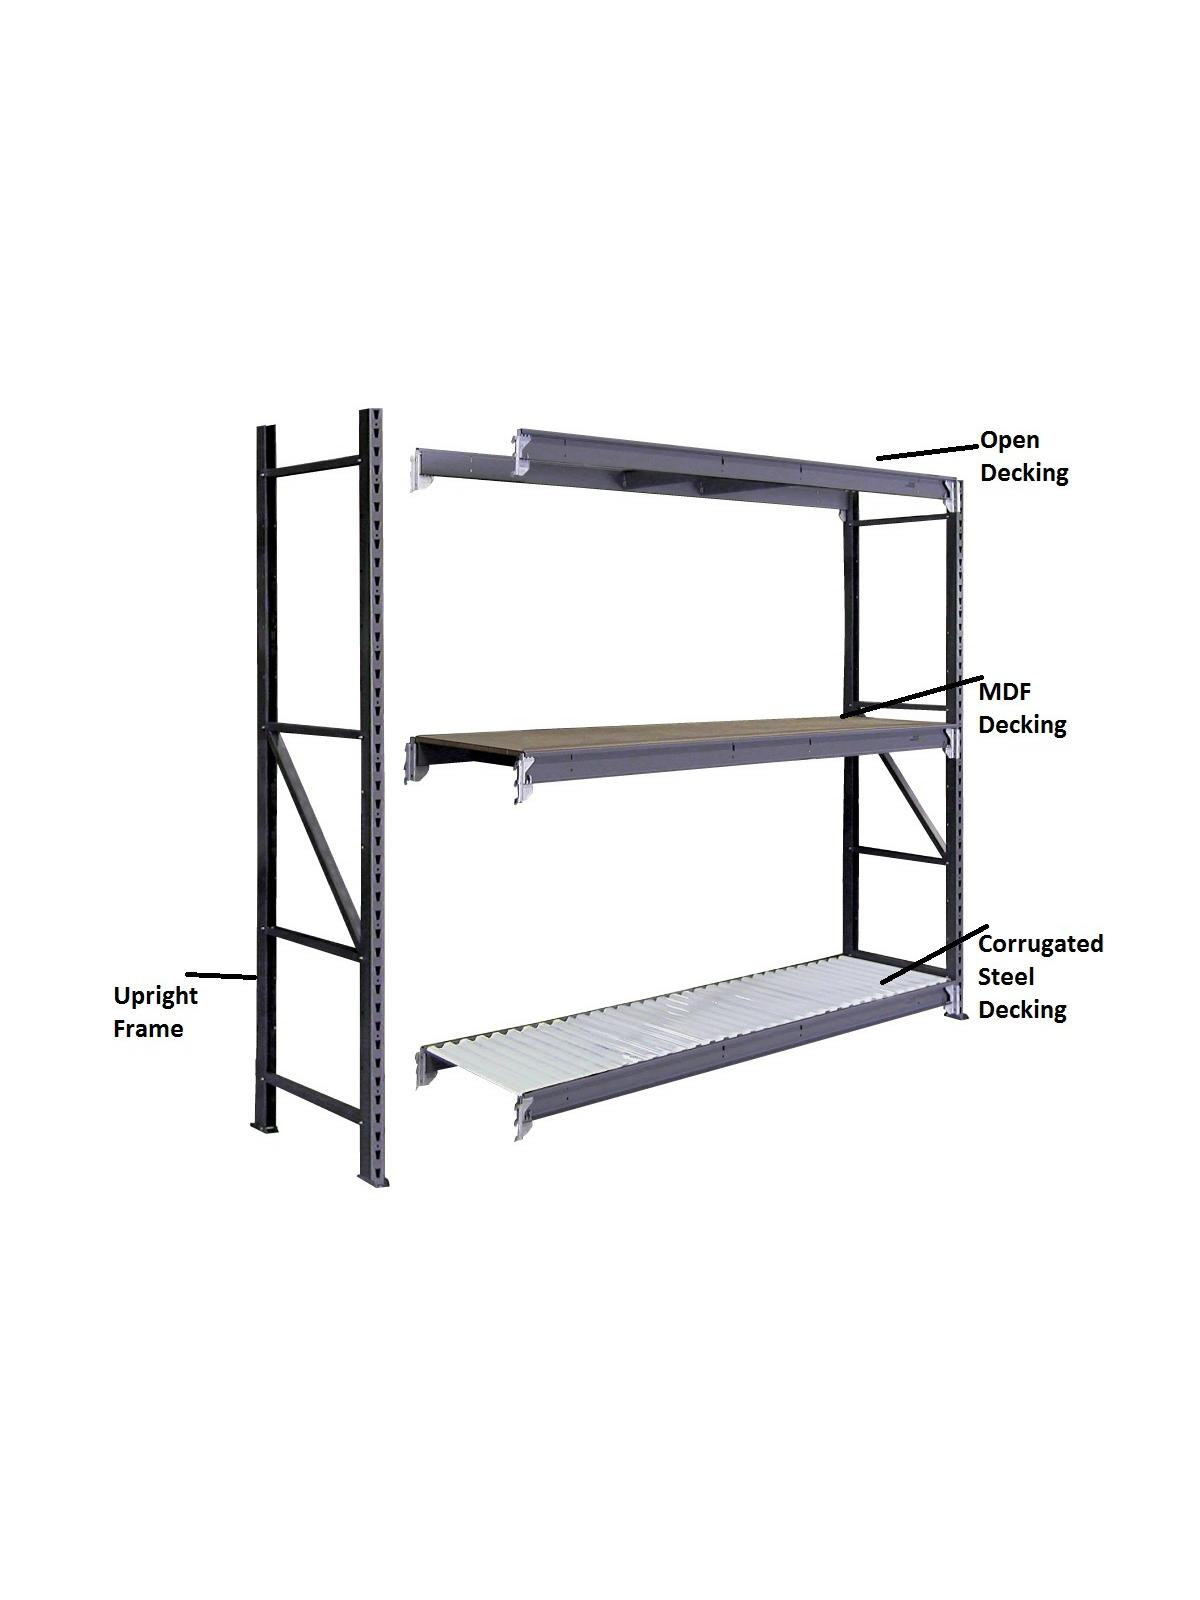 Storage Racks - Decking Racks | J & J Material Handling Systems